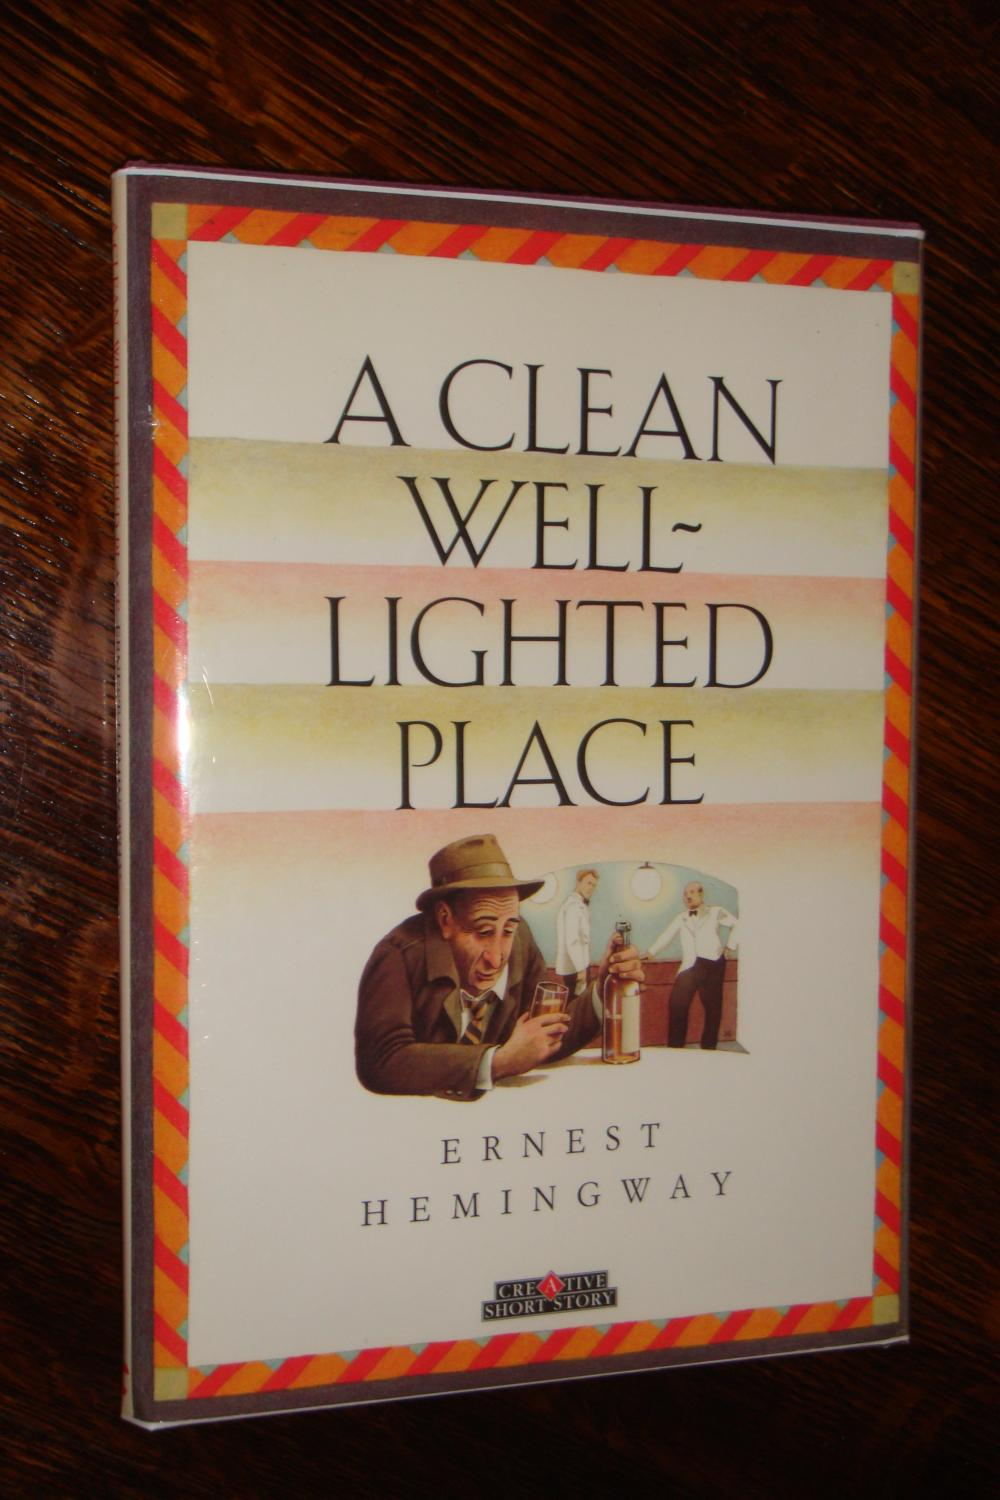 ernest hemingway a clean well lighted A clean, well-lighted place ernest hemingway 1932 author biography plot summary characters themes style historical context critical overview criticism.